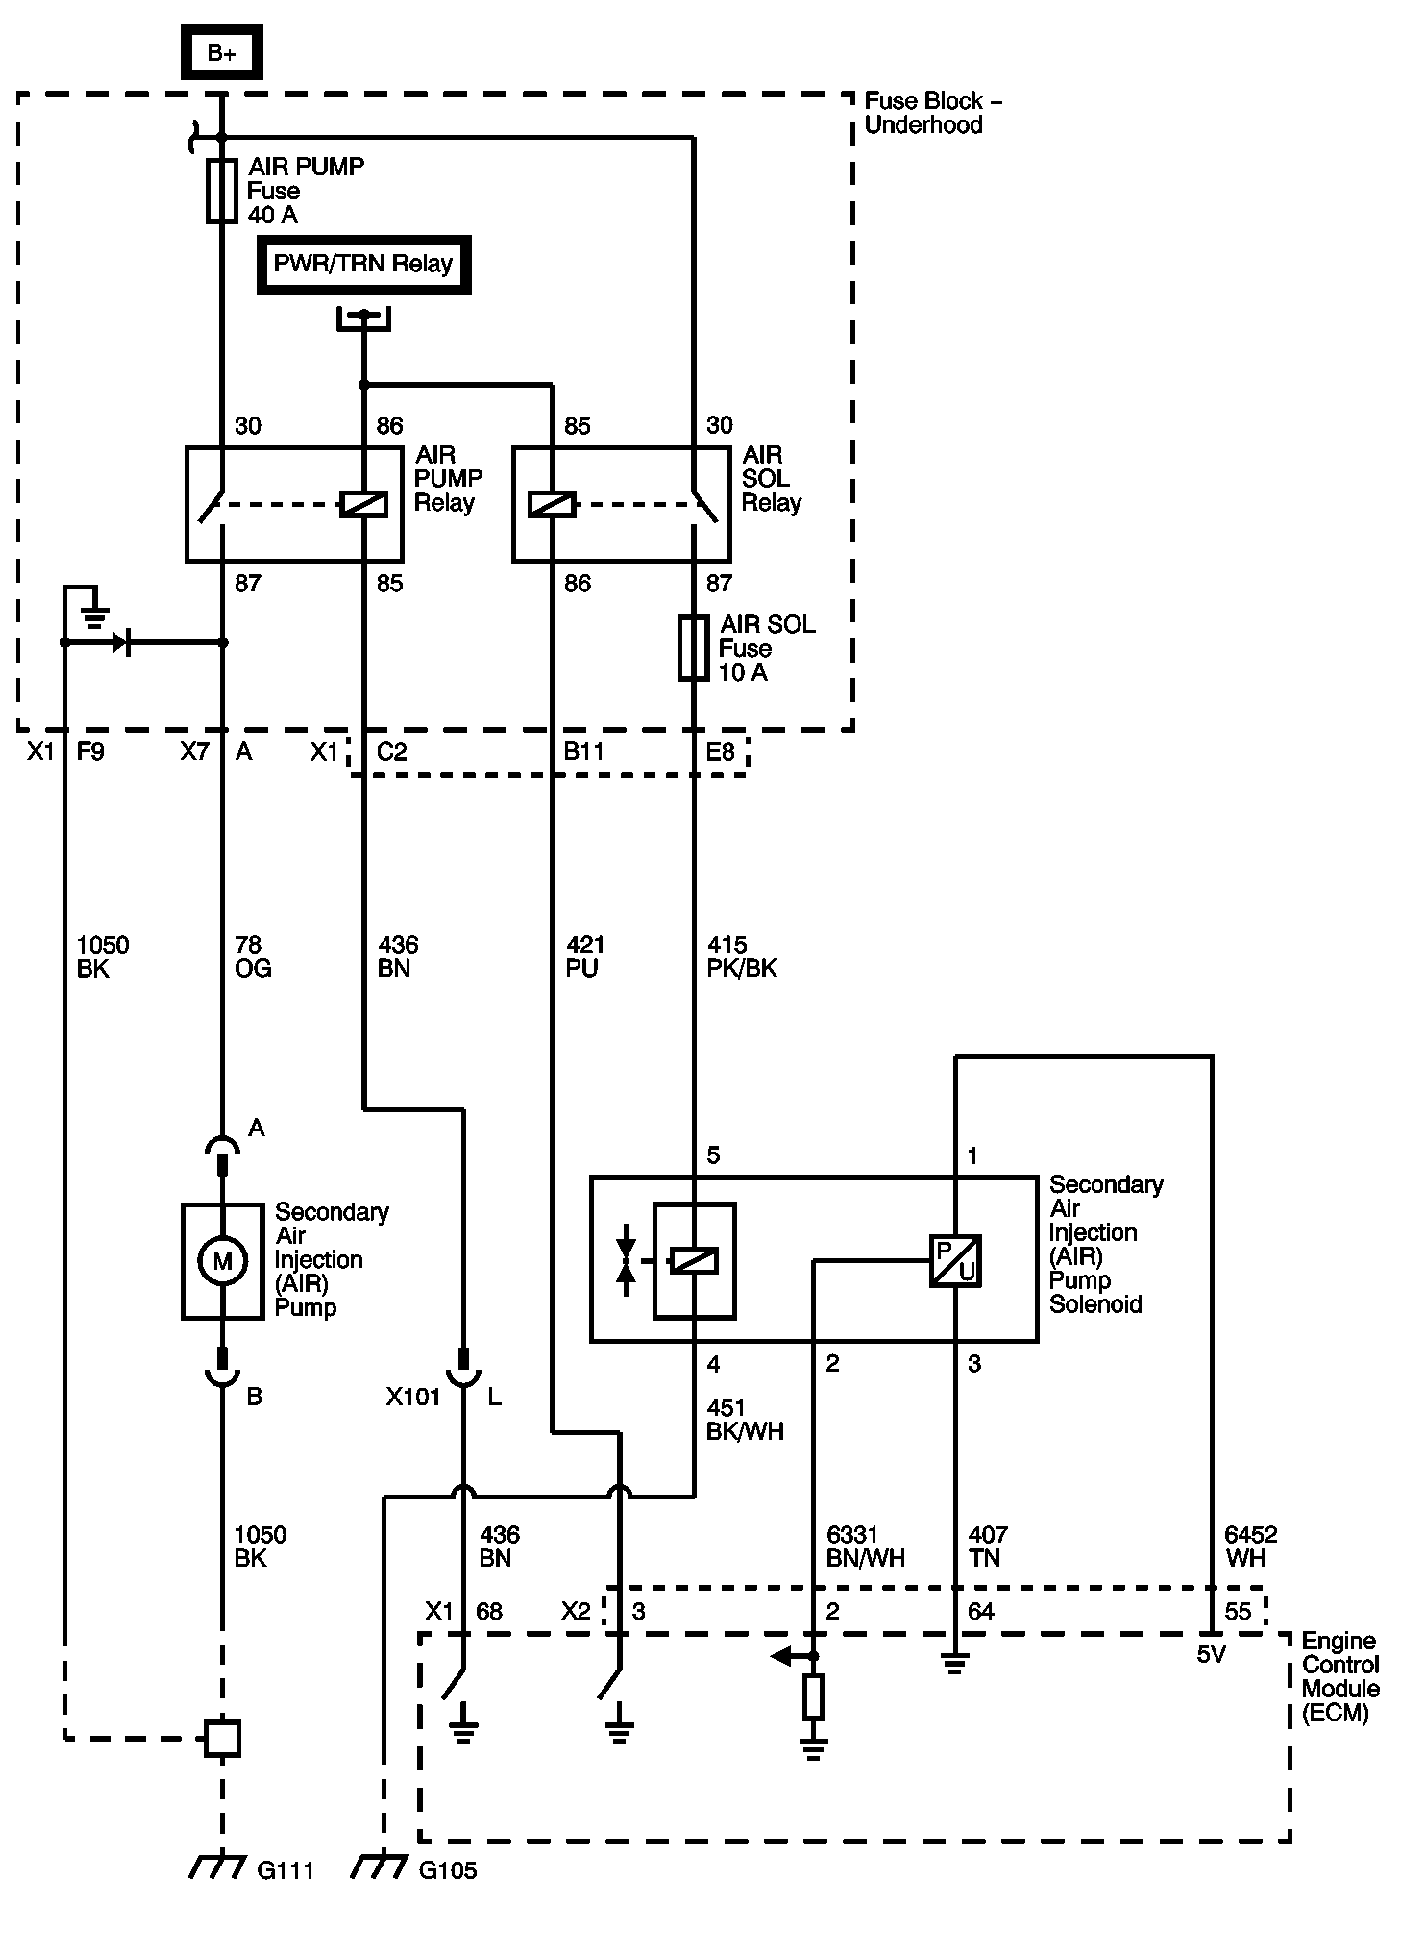 subaru wiring diagram secondary air valves subaru wiring diagram secondary air valves | wiring diagram